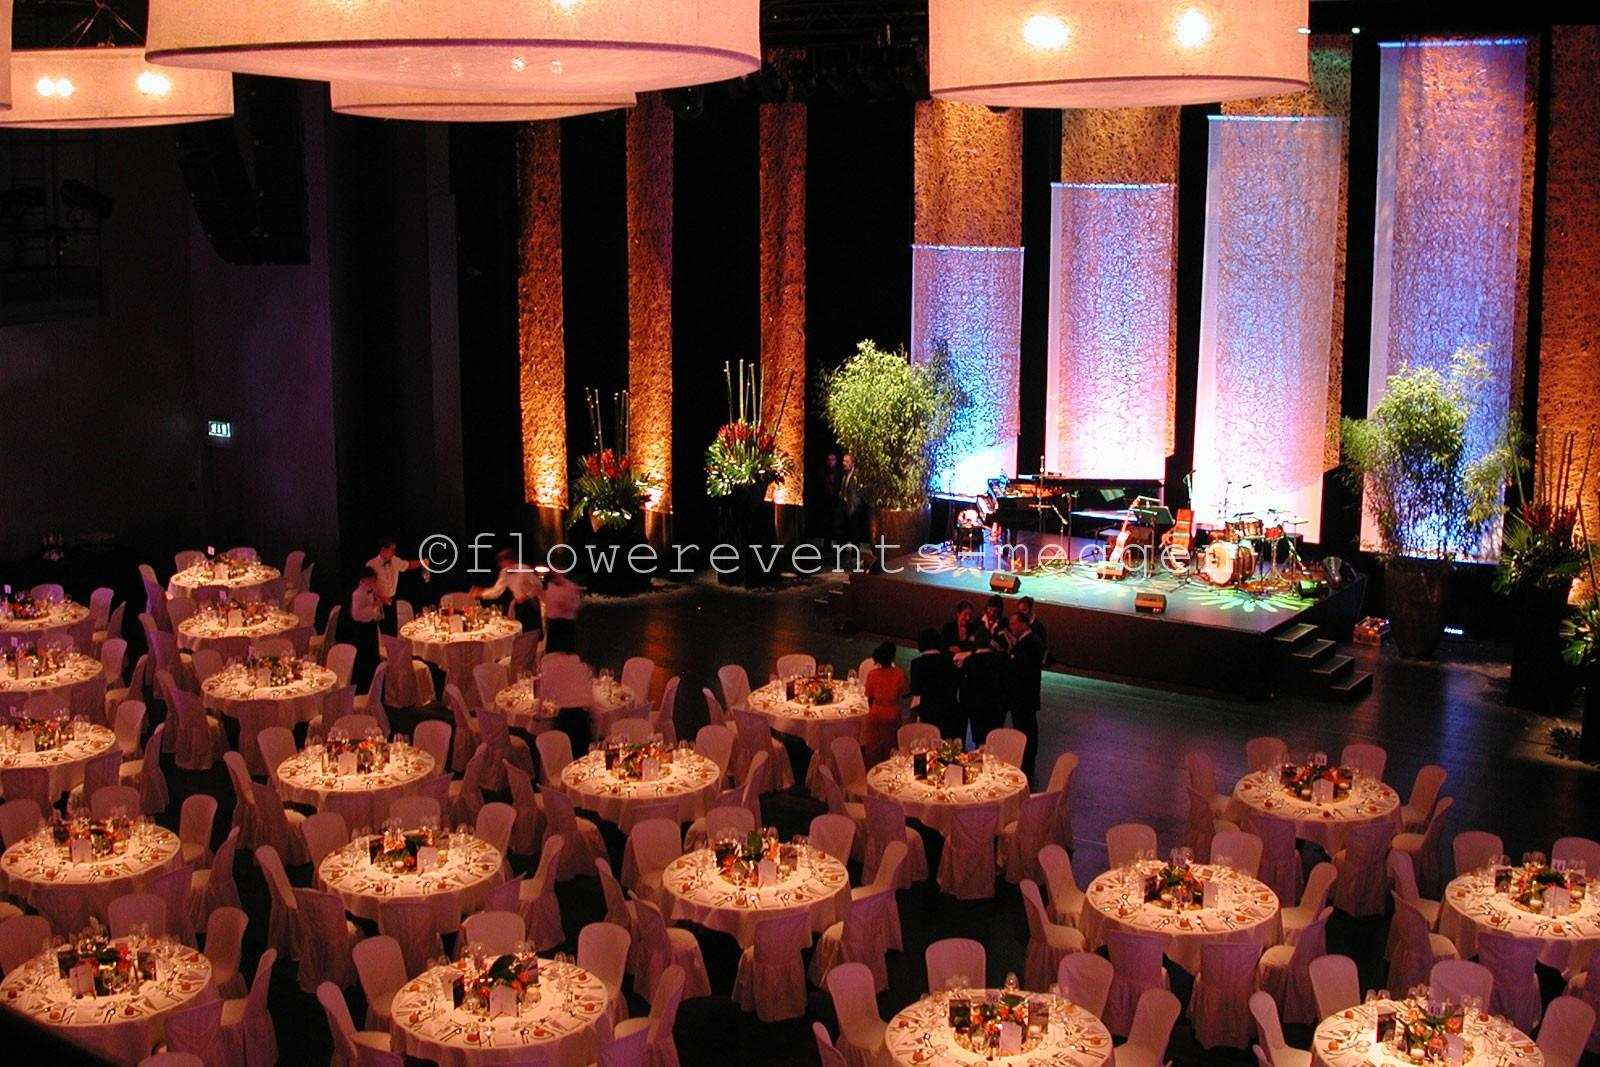 amour weddings services event decorations smartselectimage eventdecorations mon decor